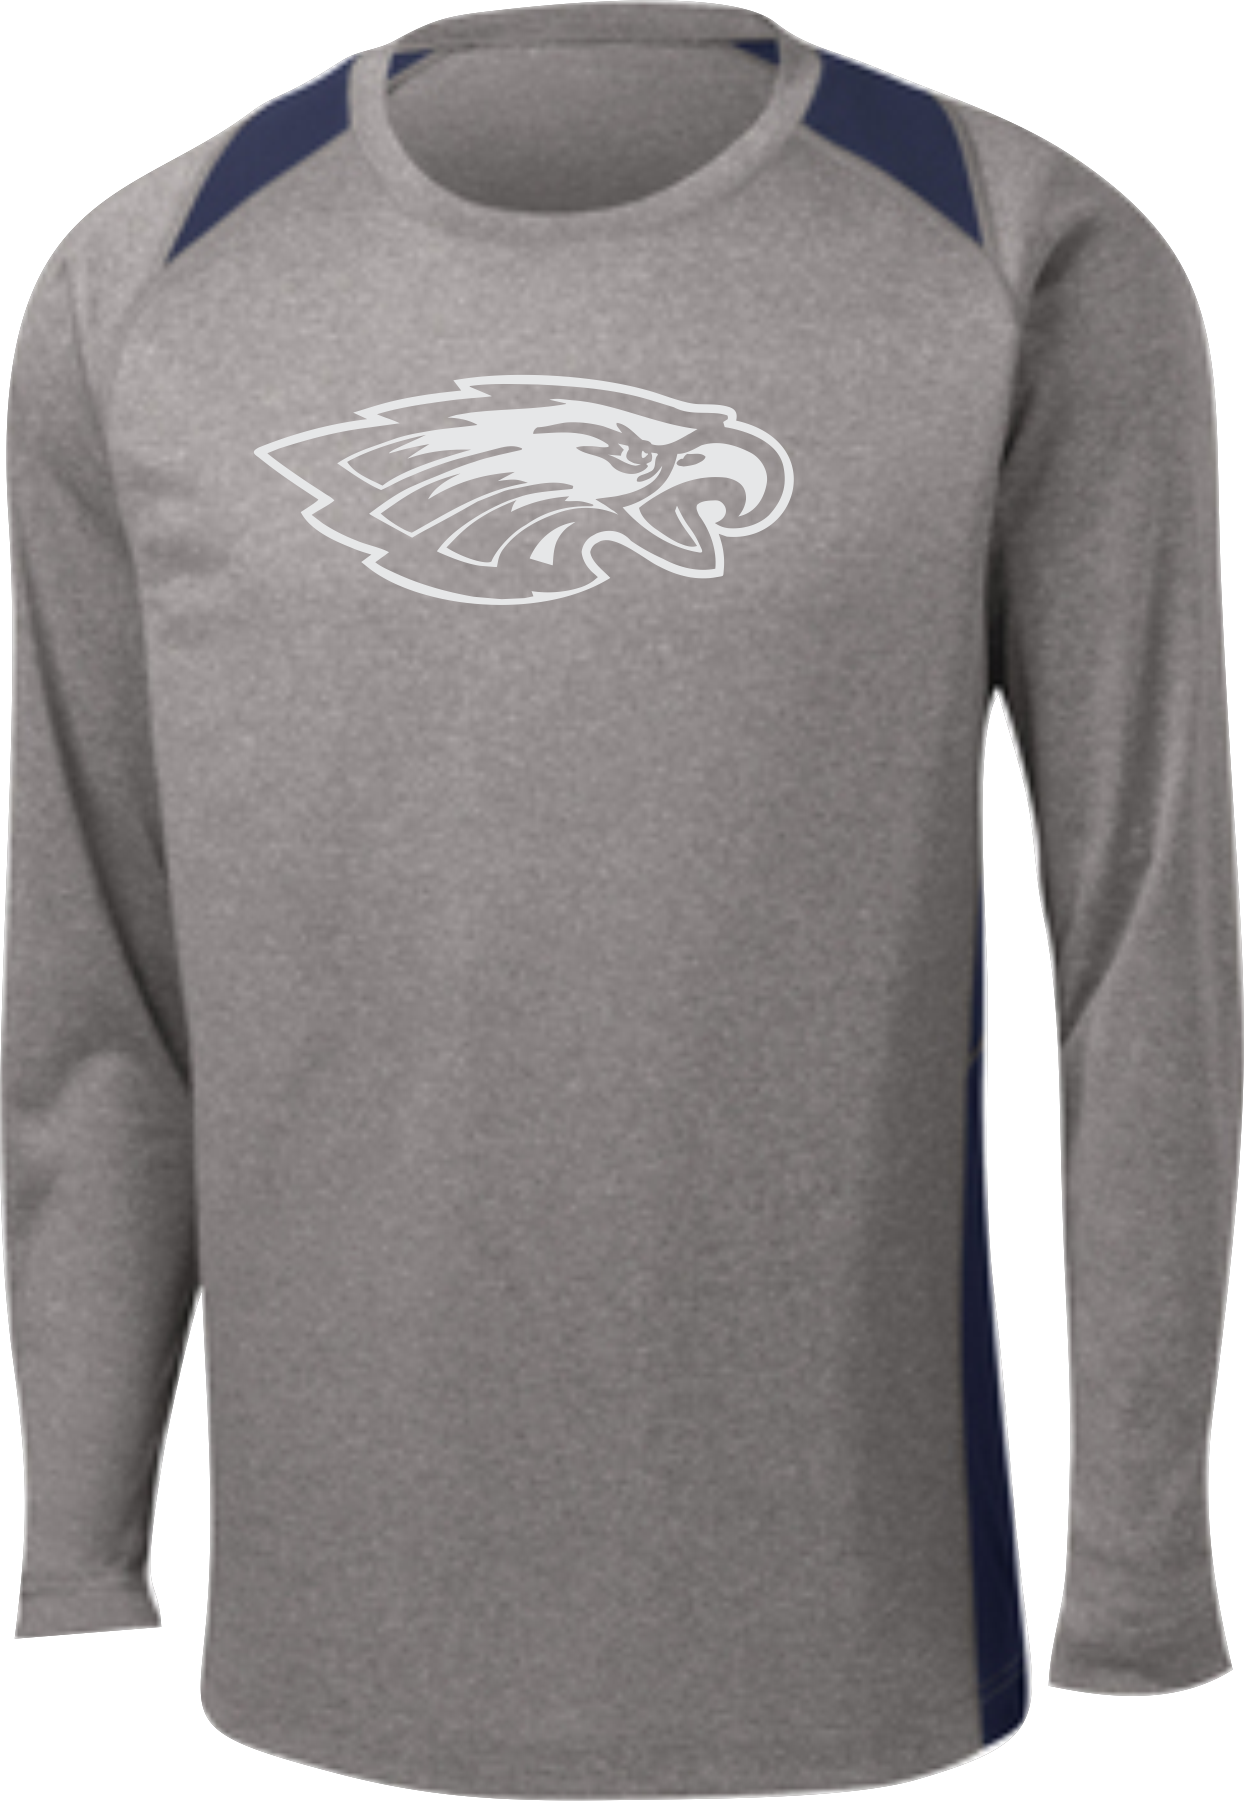 Reflective Eagle long sleeve wicking T shirt with color insert